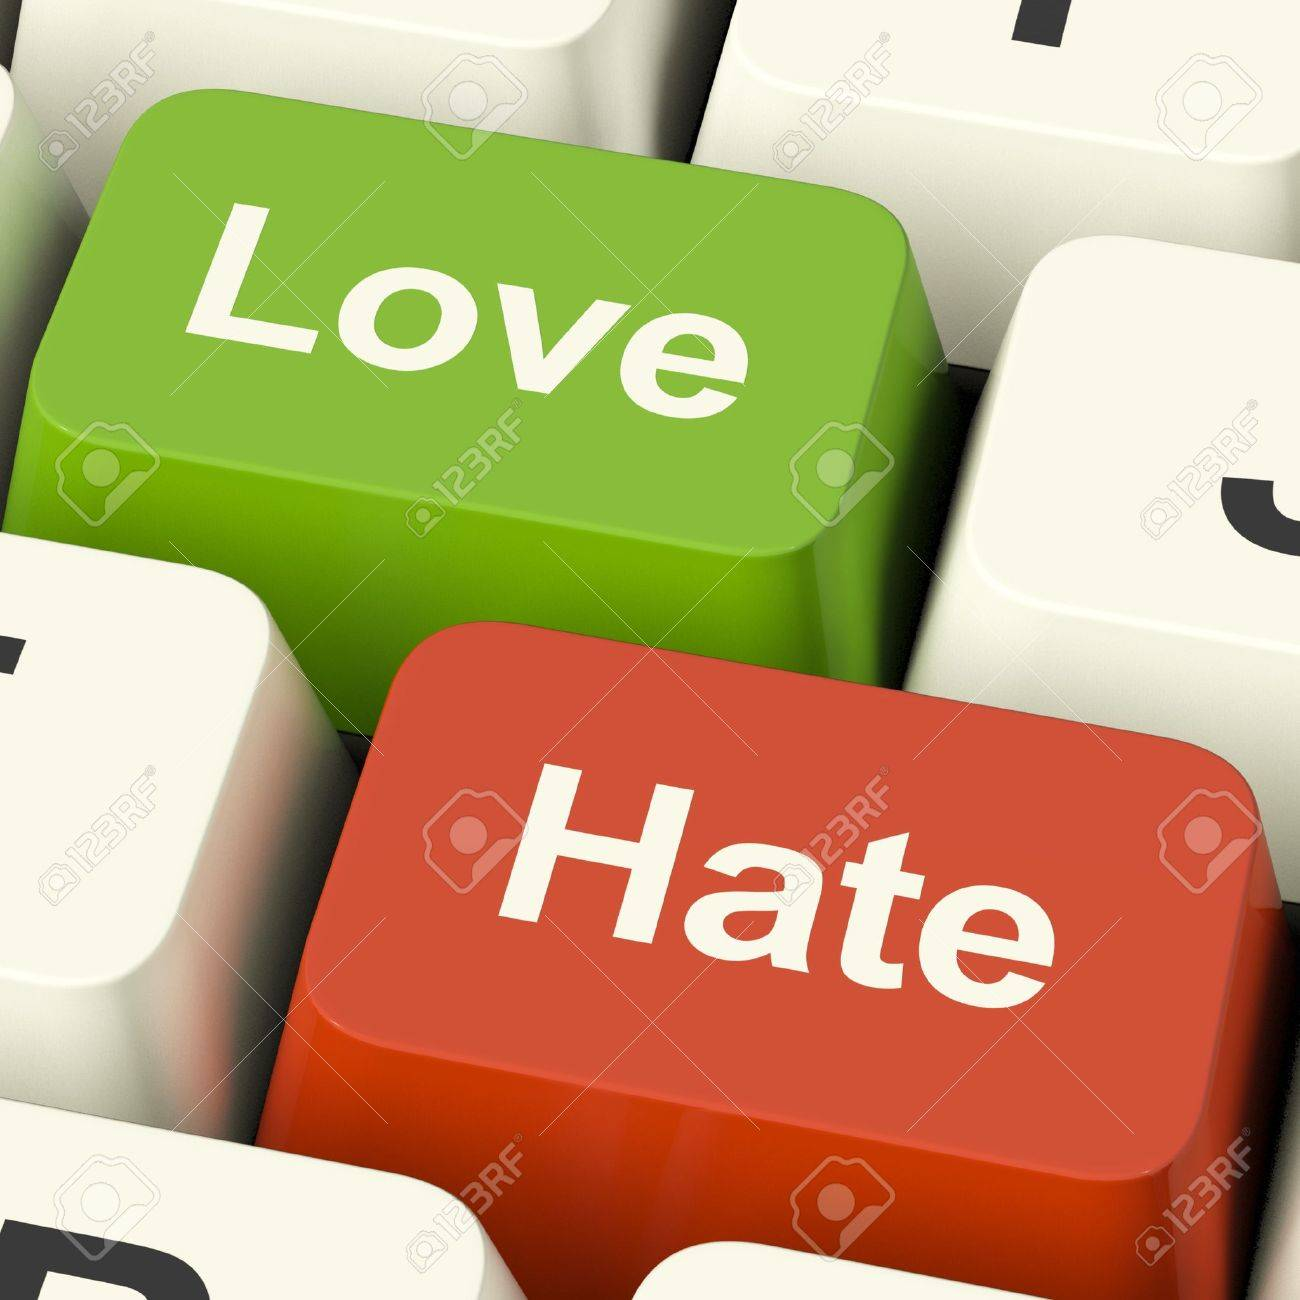 love hate computer keys shows emotion anger and conflict stock love hate computer keys shows emotion anger and conflict stock photo 13481322